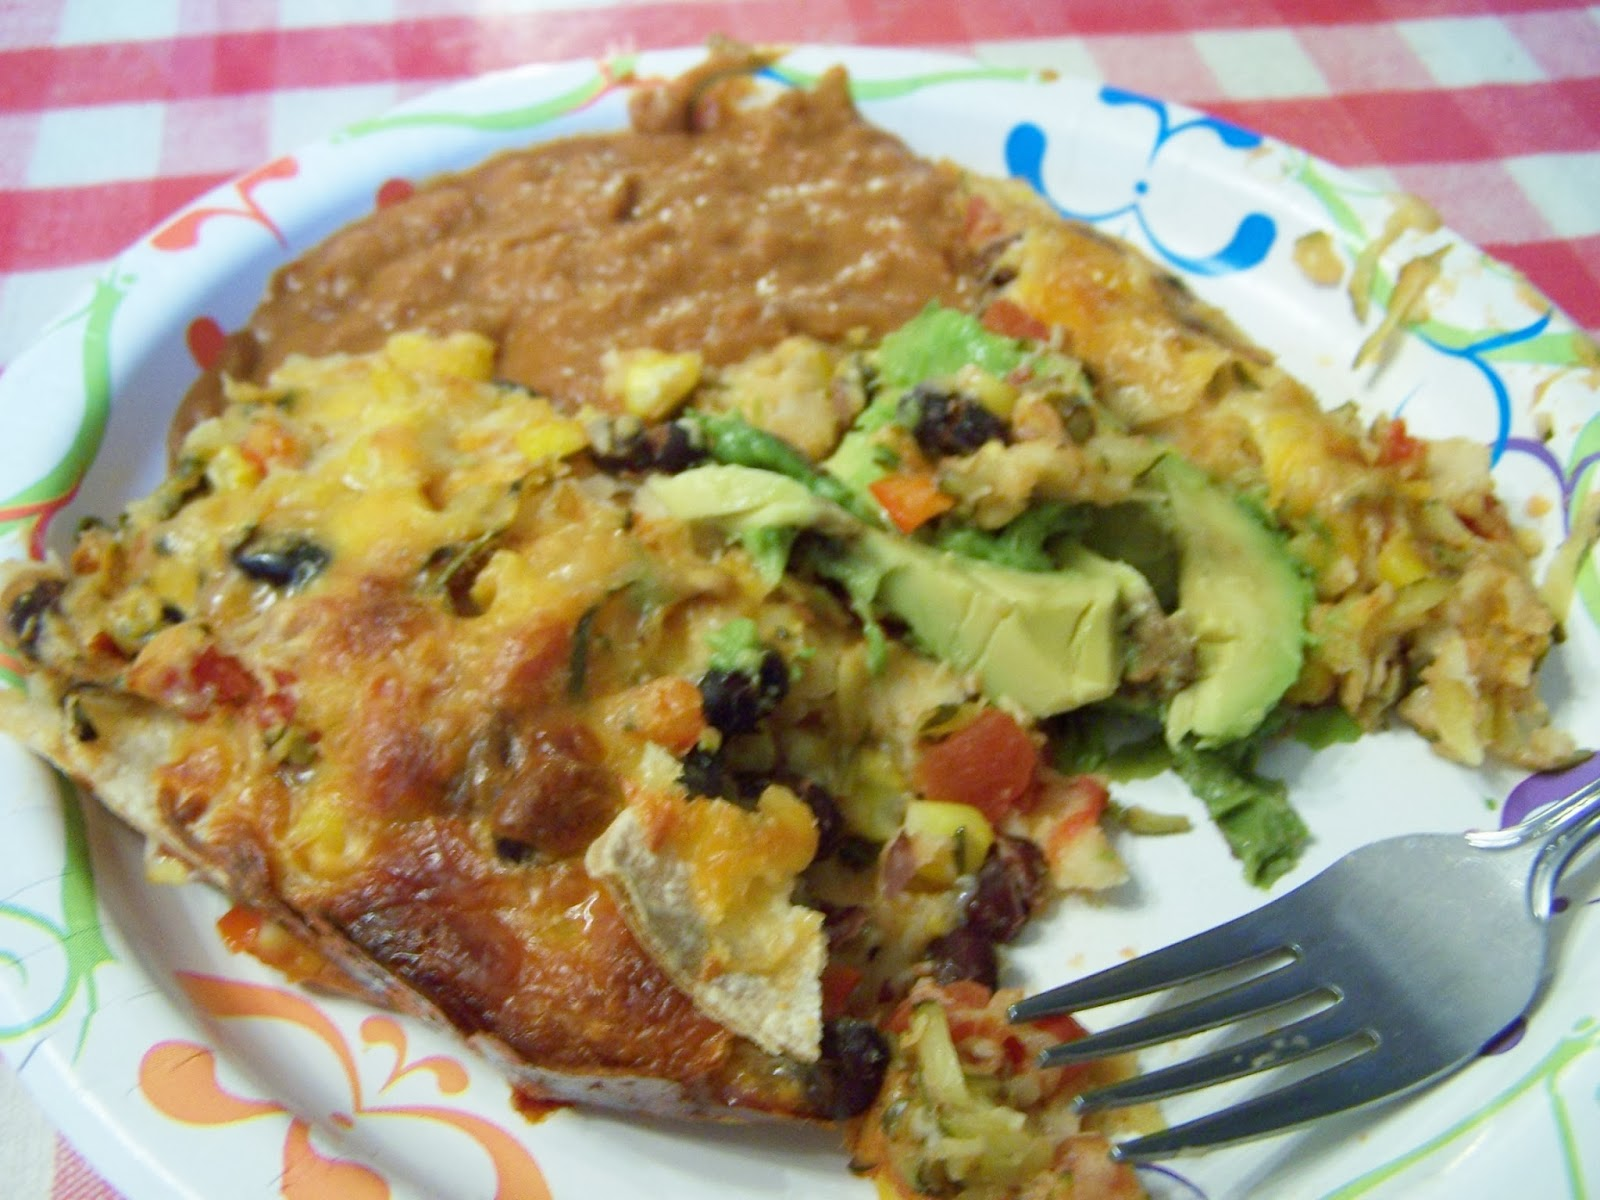 Recipe of the Month: Vegetarian Enchilada Bake